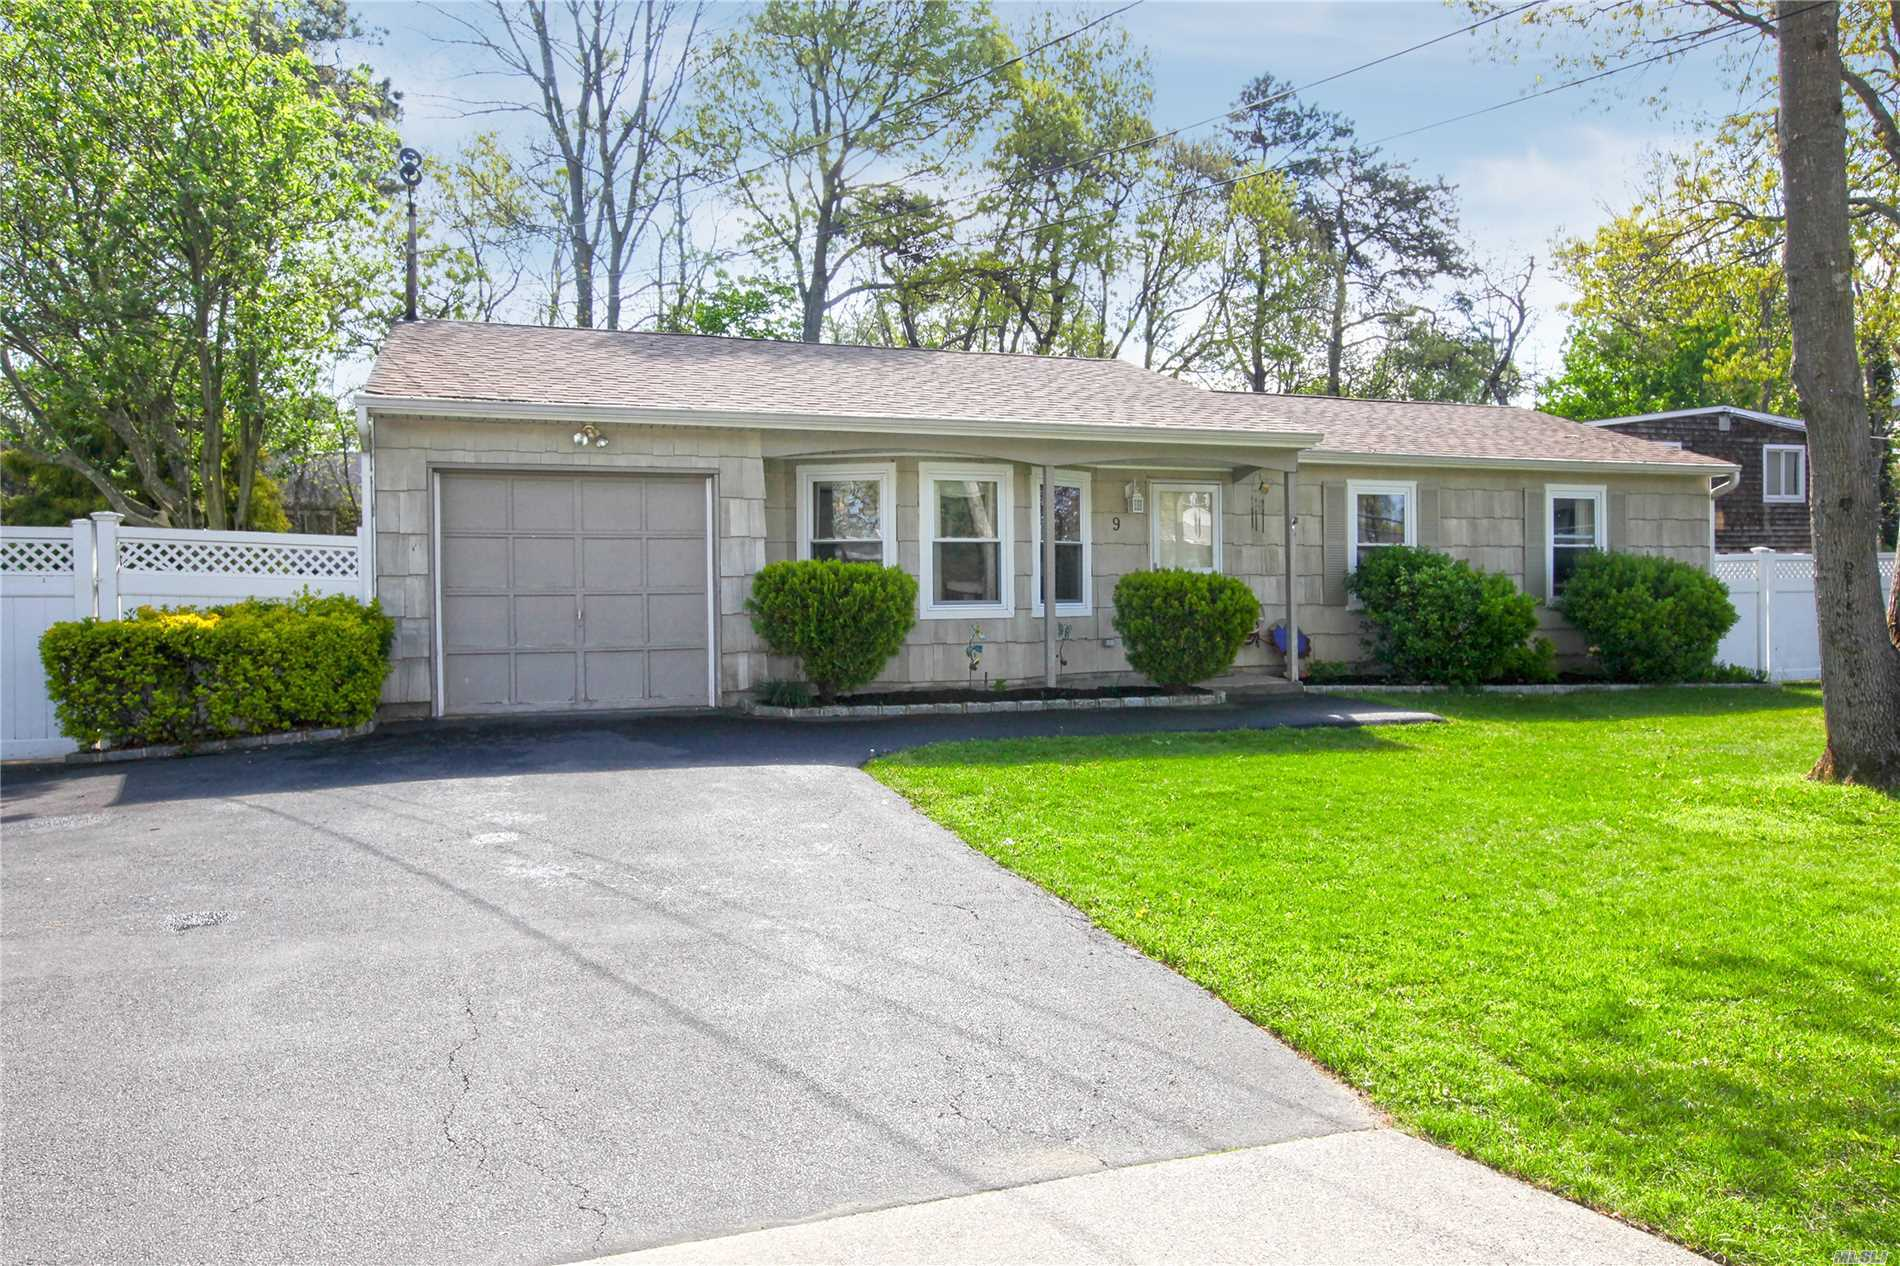 9 Albermarle Ave - Holtsville, New York